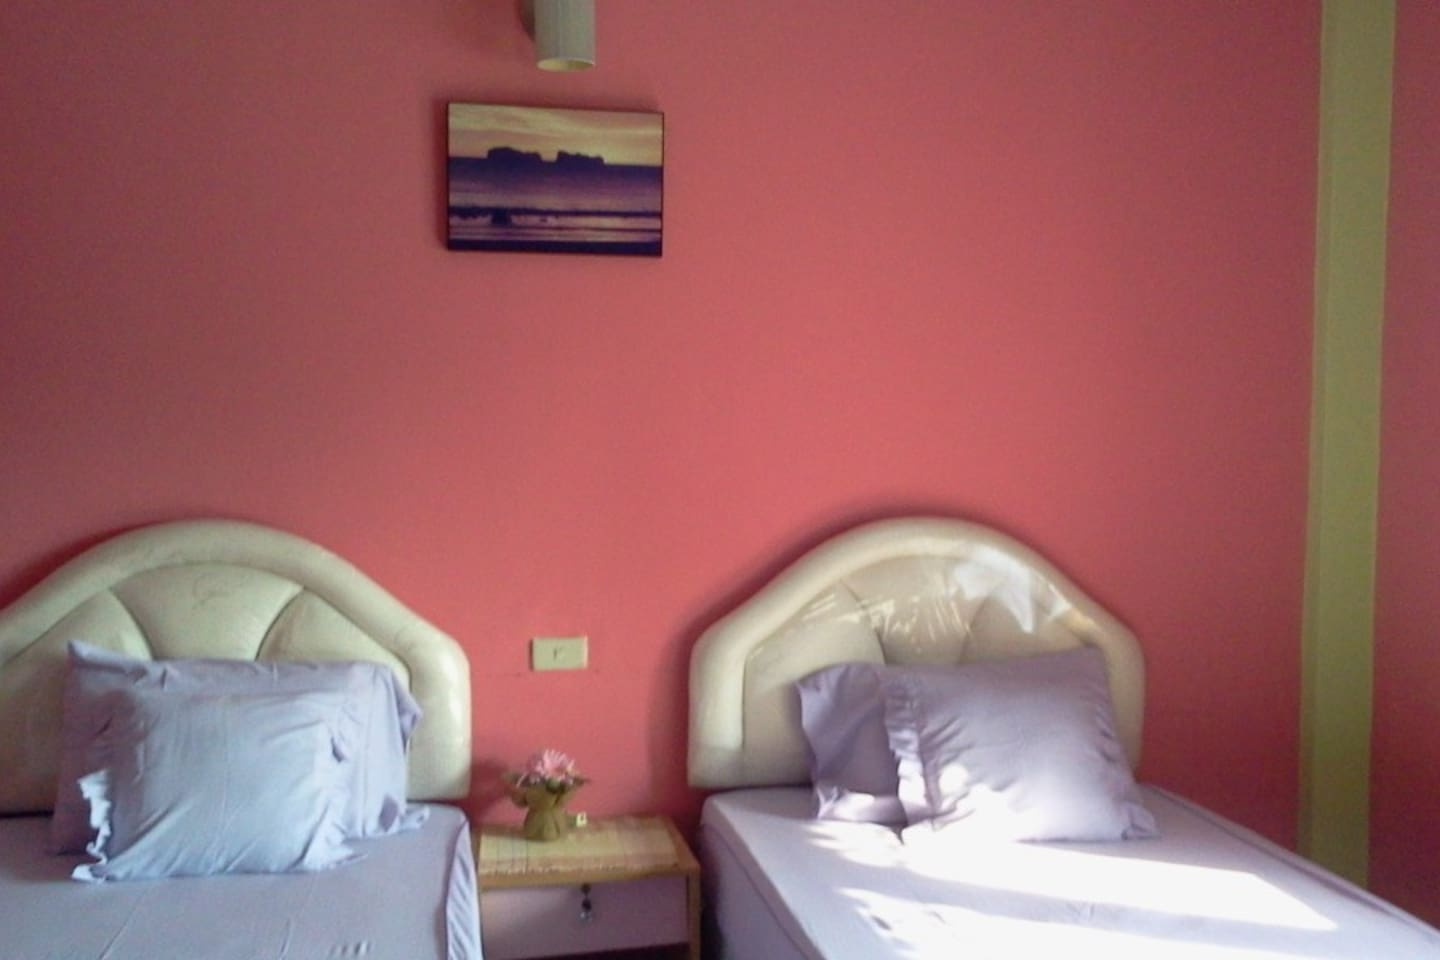 All rooms are fully equipped with TV, fridge, Hot water shower & Airconditioner